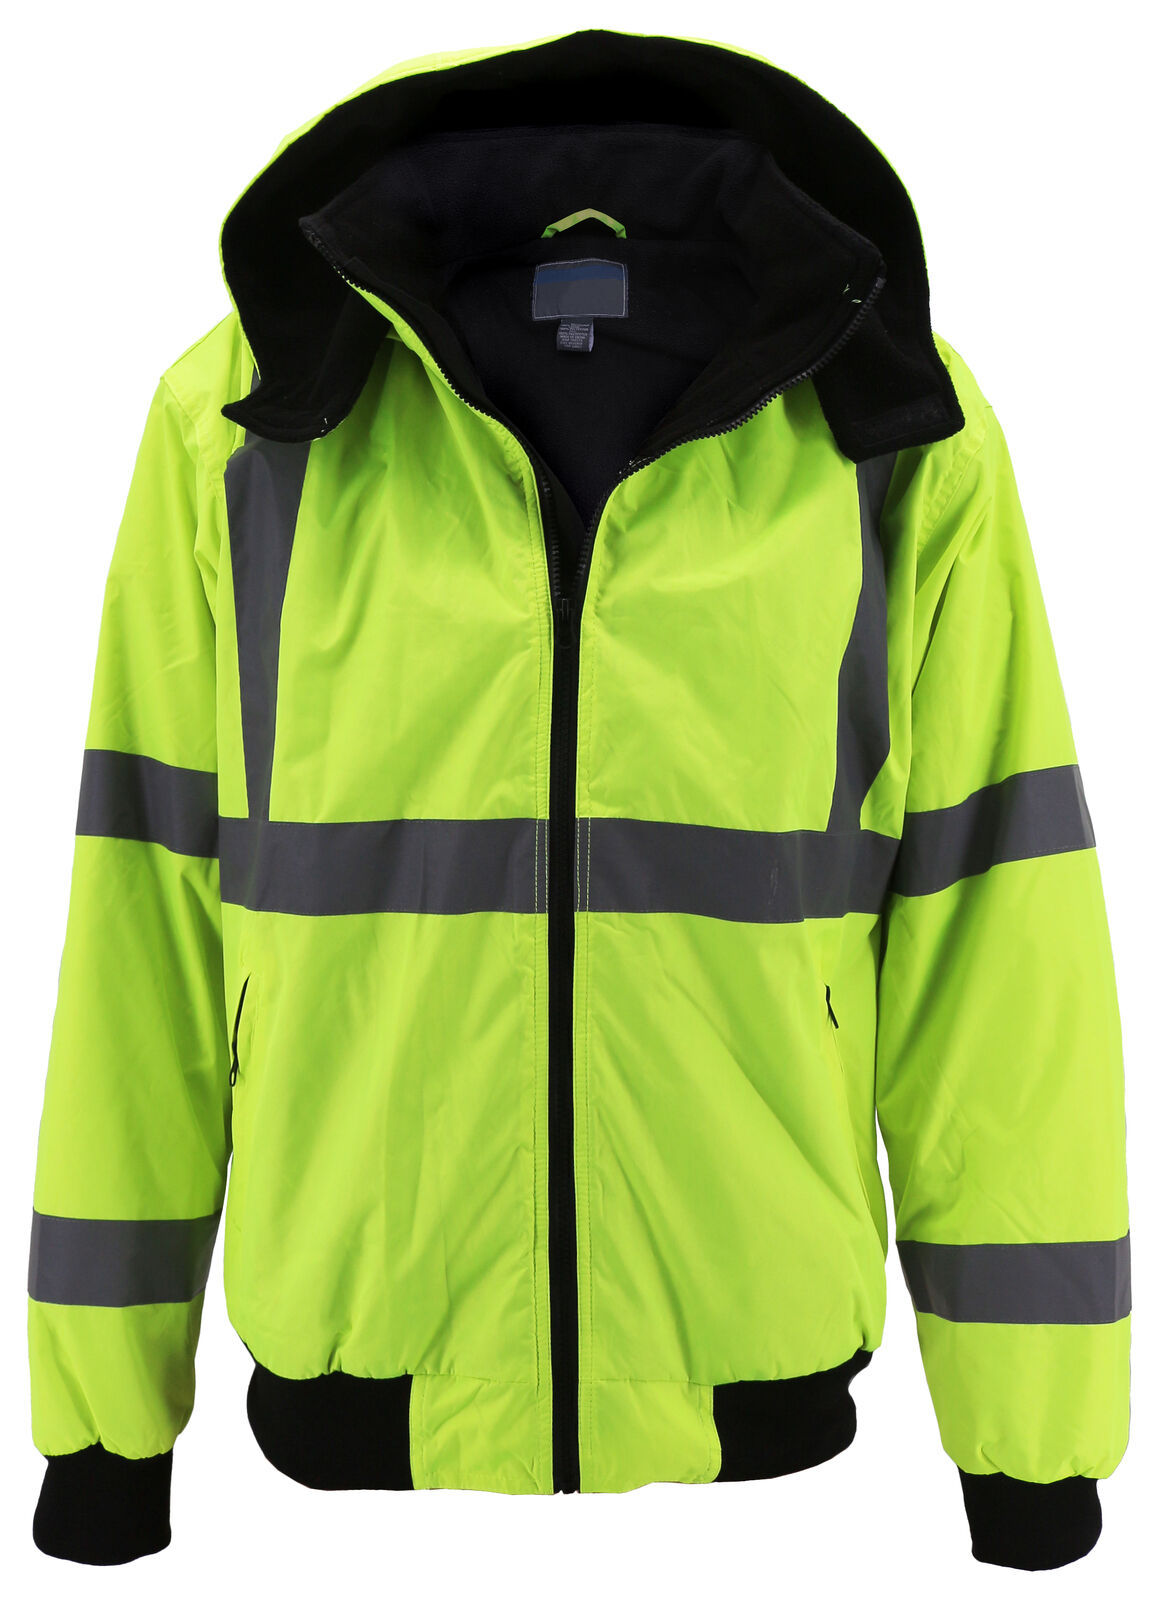 Men's Class 3 Safety High Visibility Water Resistant Reflective Neon Work Jacket image 2